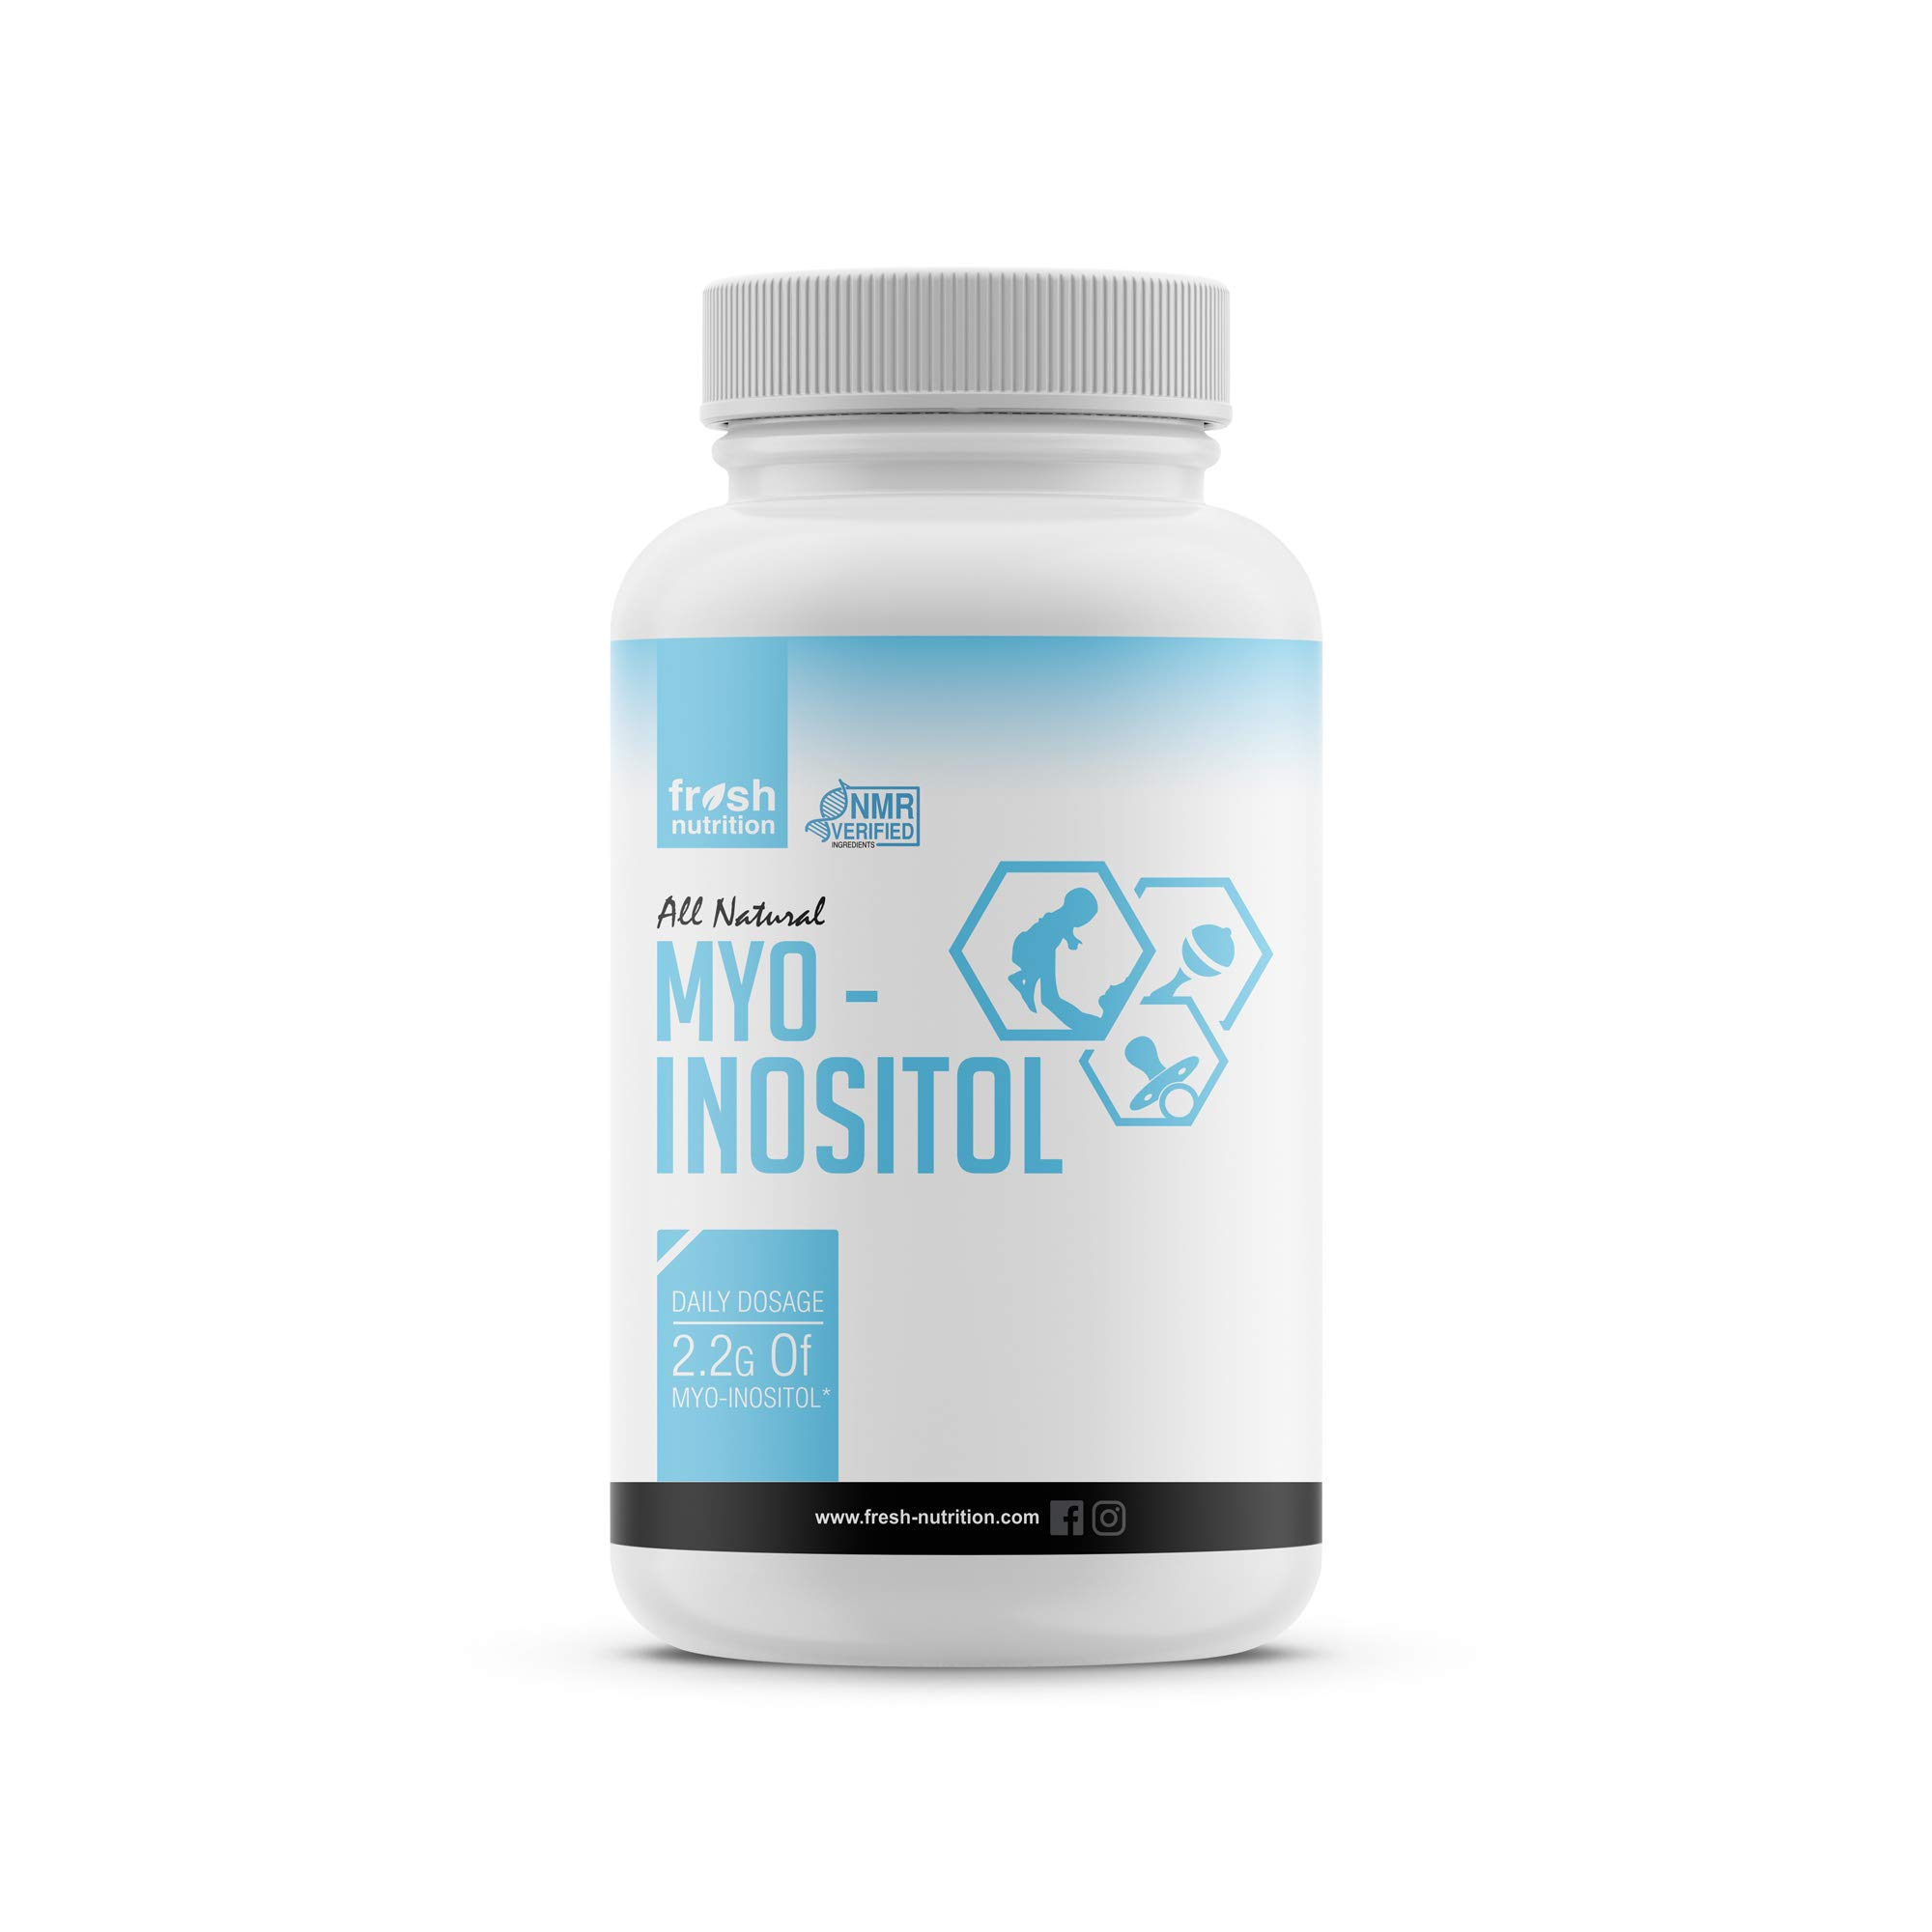 Myo-Inositol - PCOS - 2200mg - 120 High Potency Powder Capsules - Strongest and Best Value Myo Inositol - Potent Fertility and Reproductive Support - Healthy Ovulation and a Regular Cycle